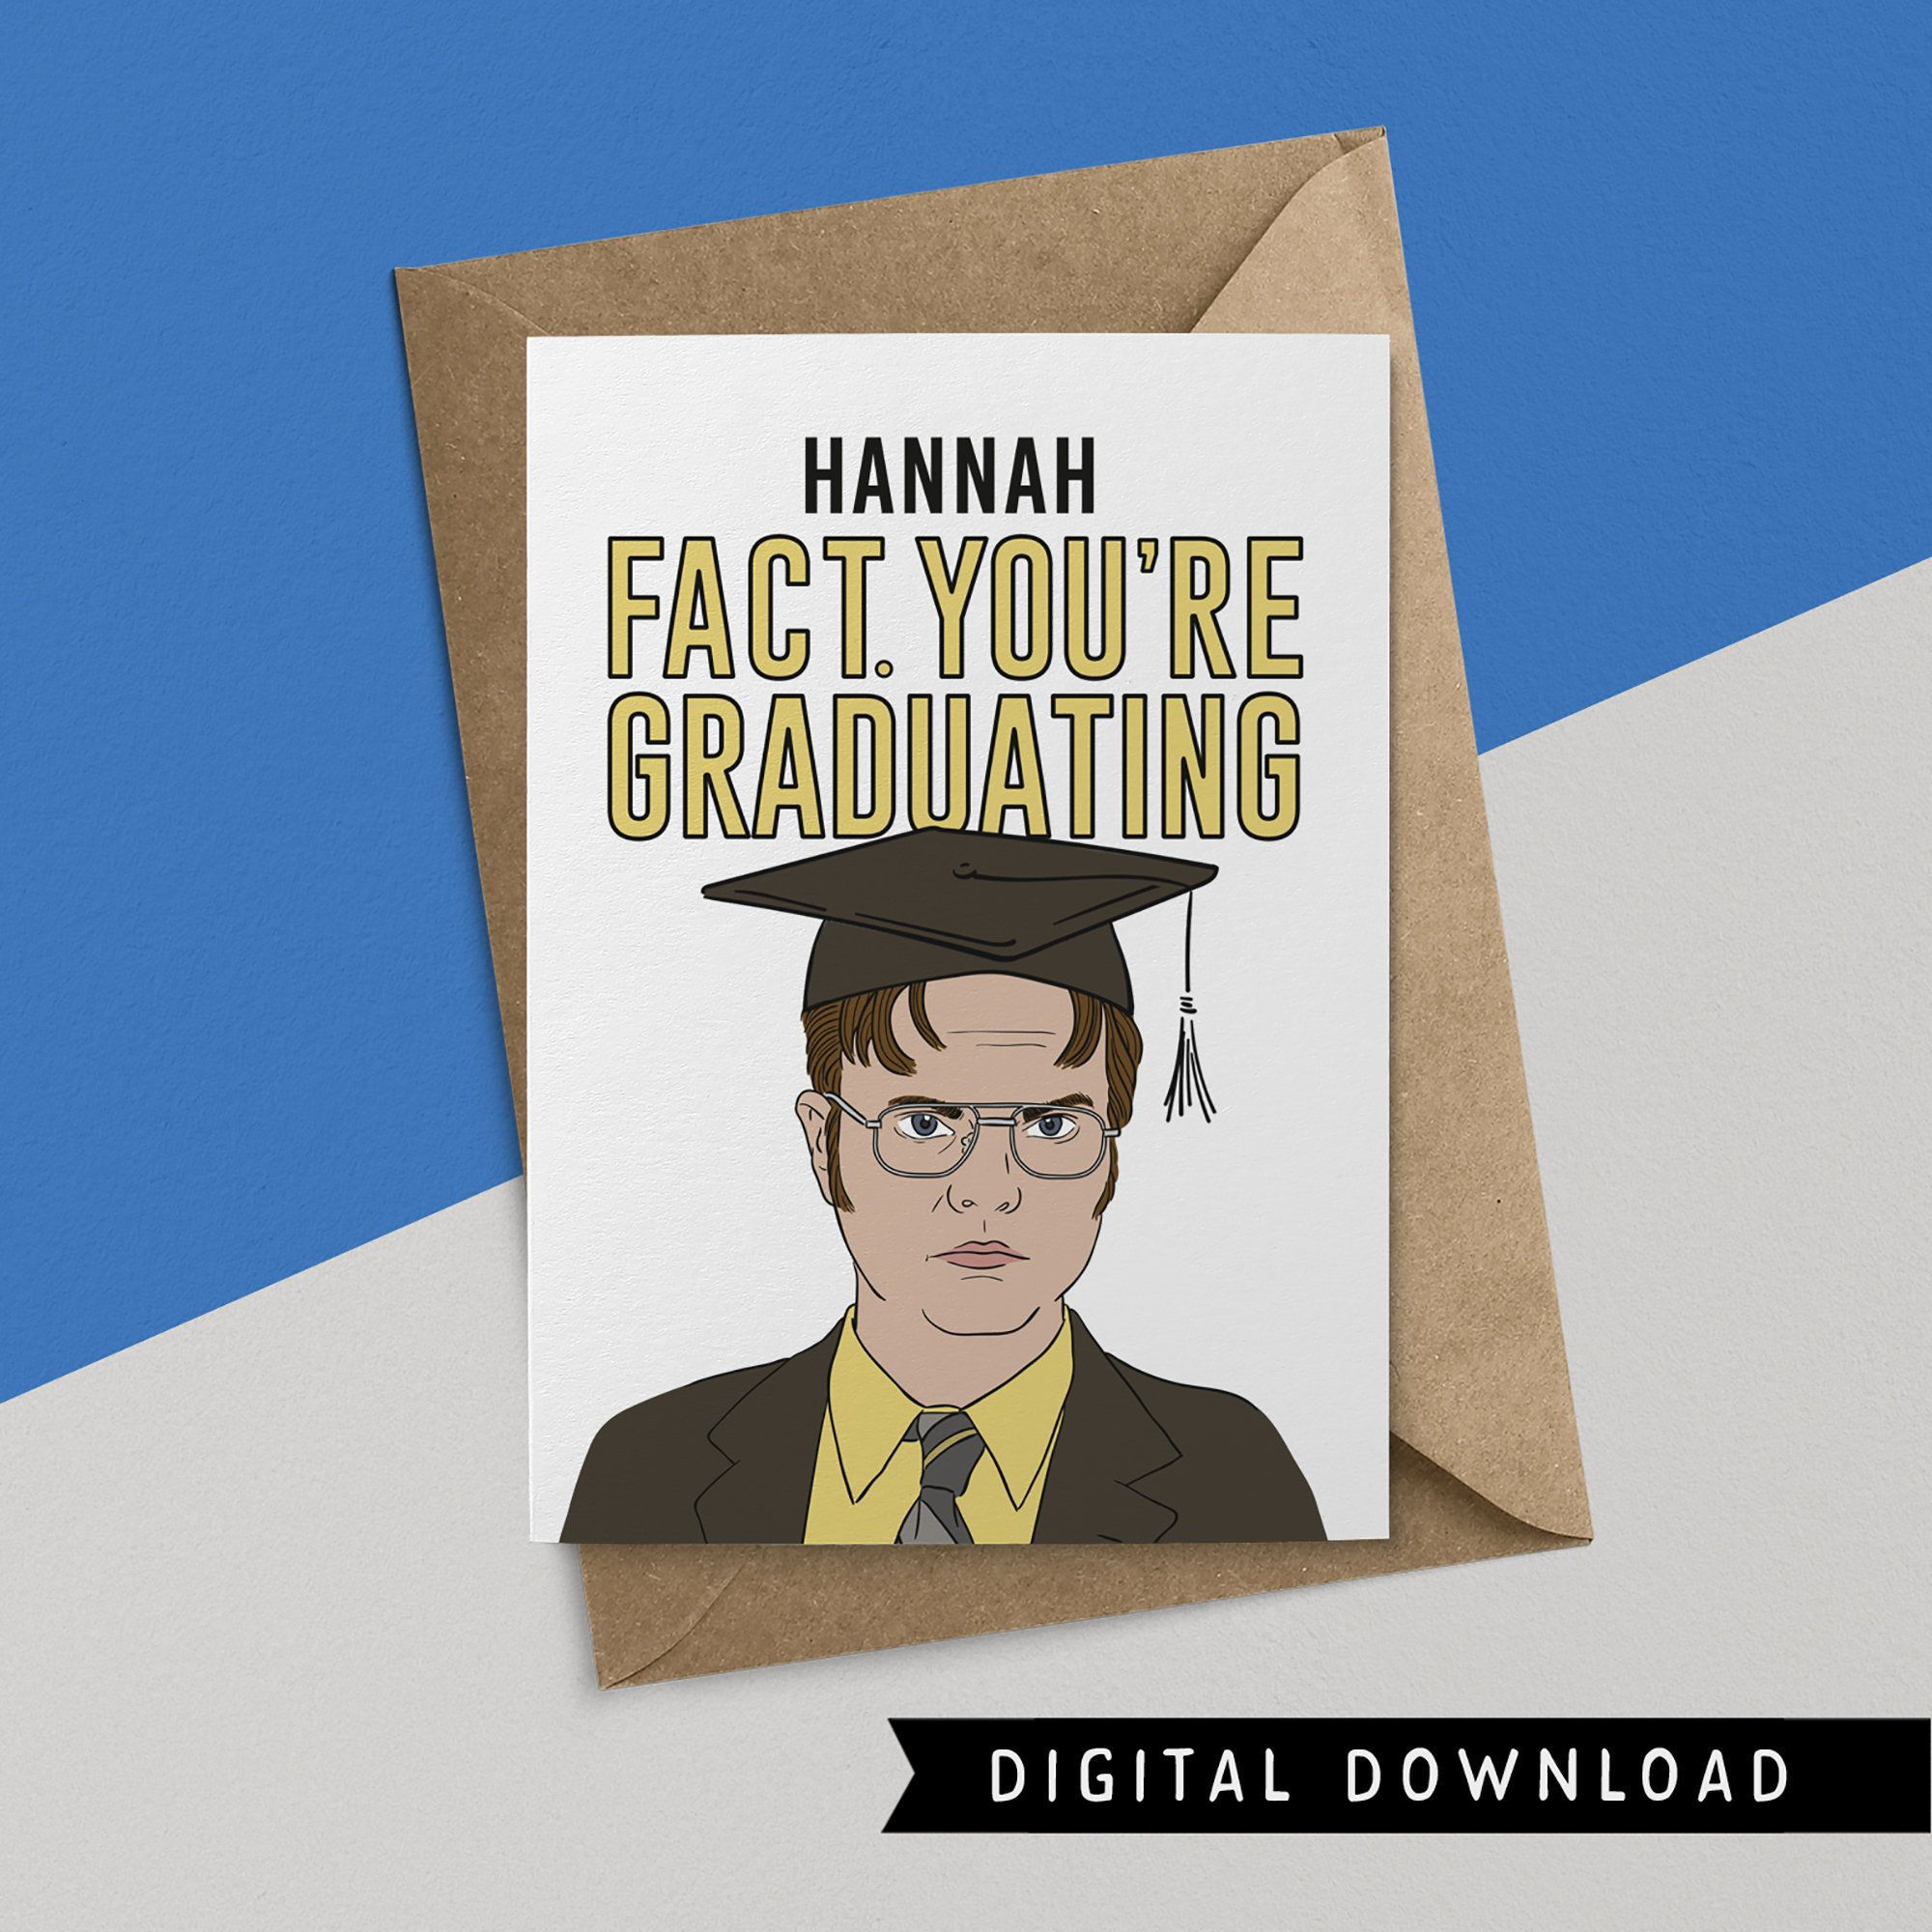 Buy 1 get 1 free funny graduation card instant download